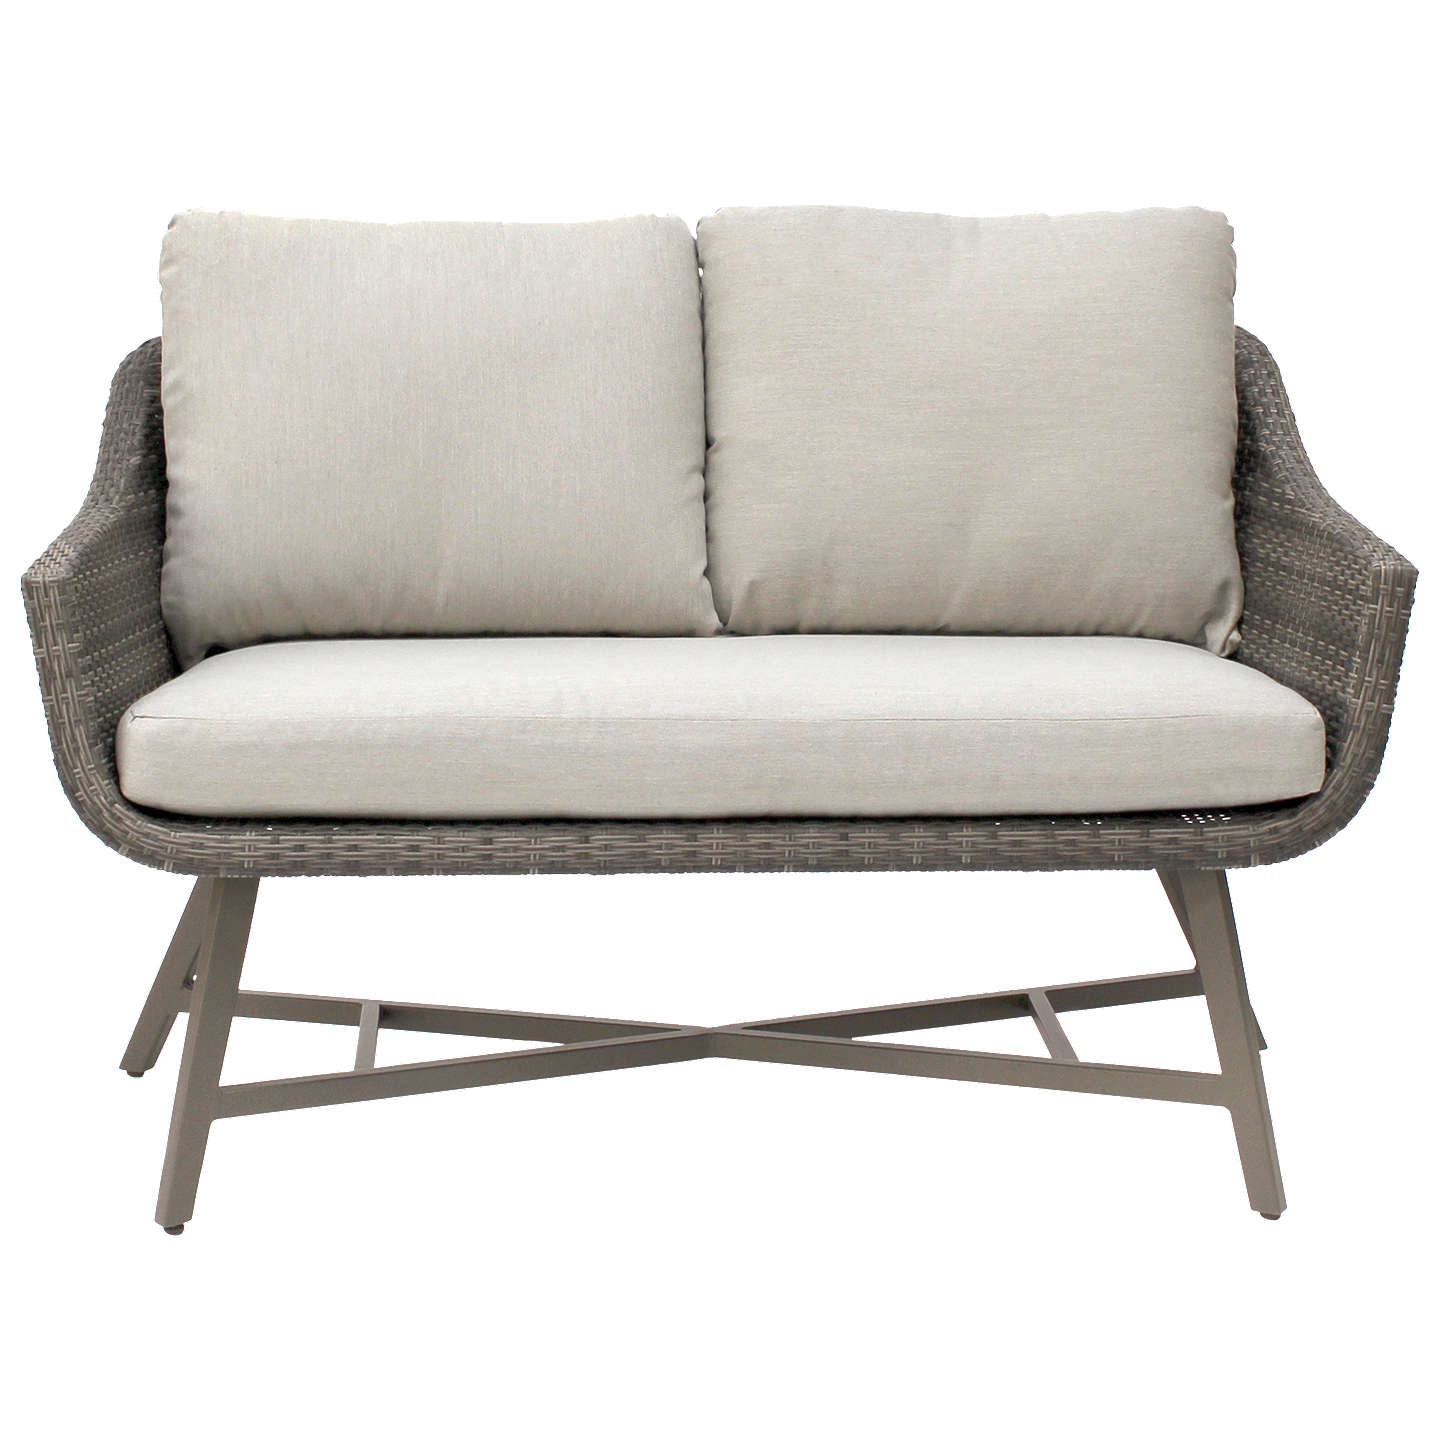 kettler lamode lounge 2 seater garden sofa with cushions at john lewis. Black Bedroom Furniture Sets. Home Design Ideas